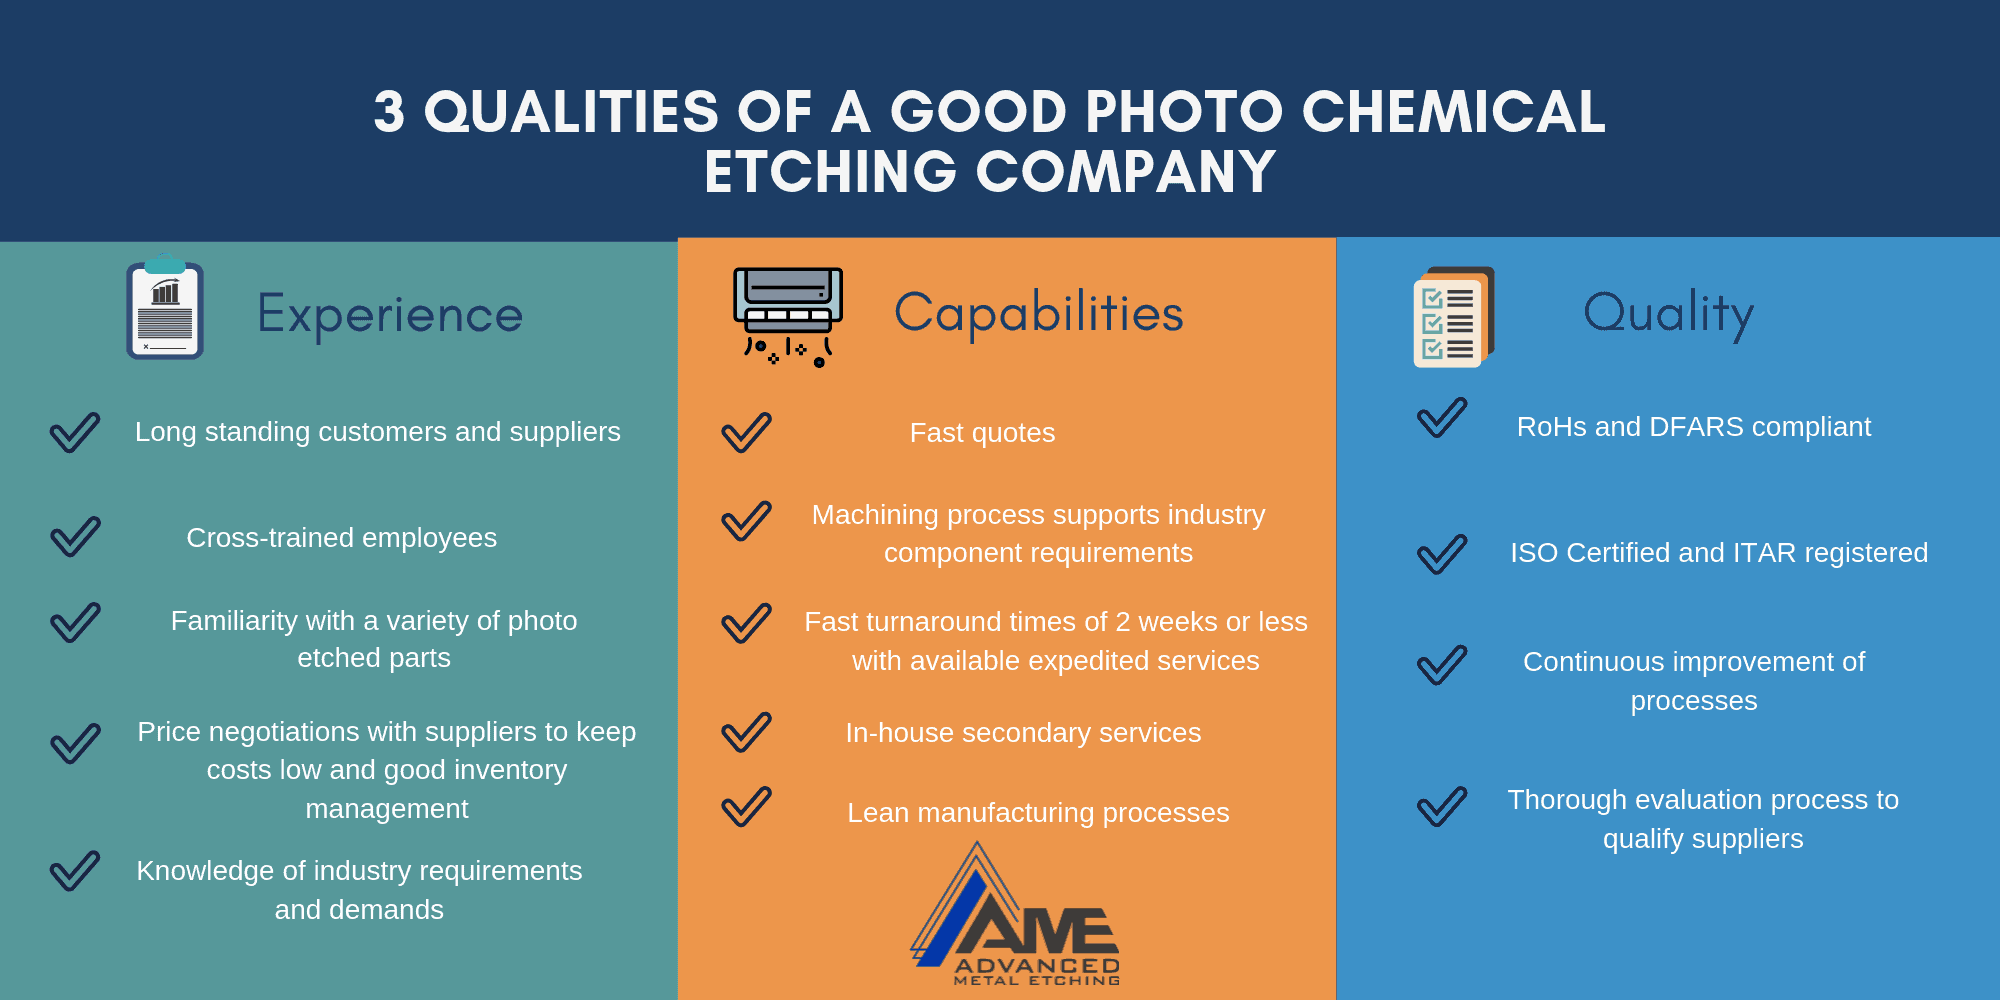 3 Qualities of A Good Photo chemical etching company